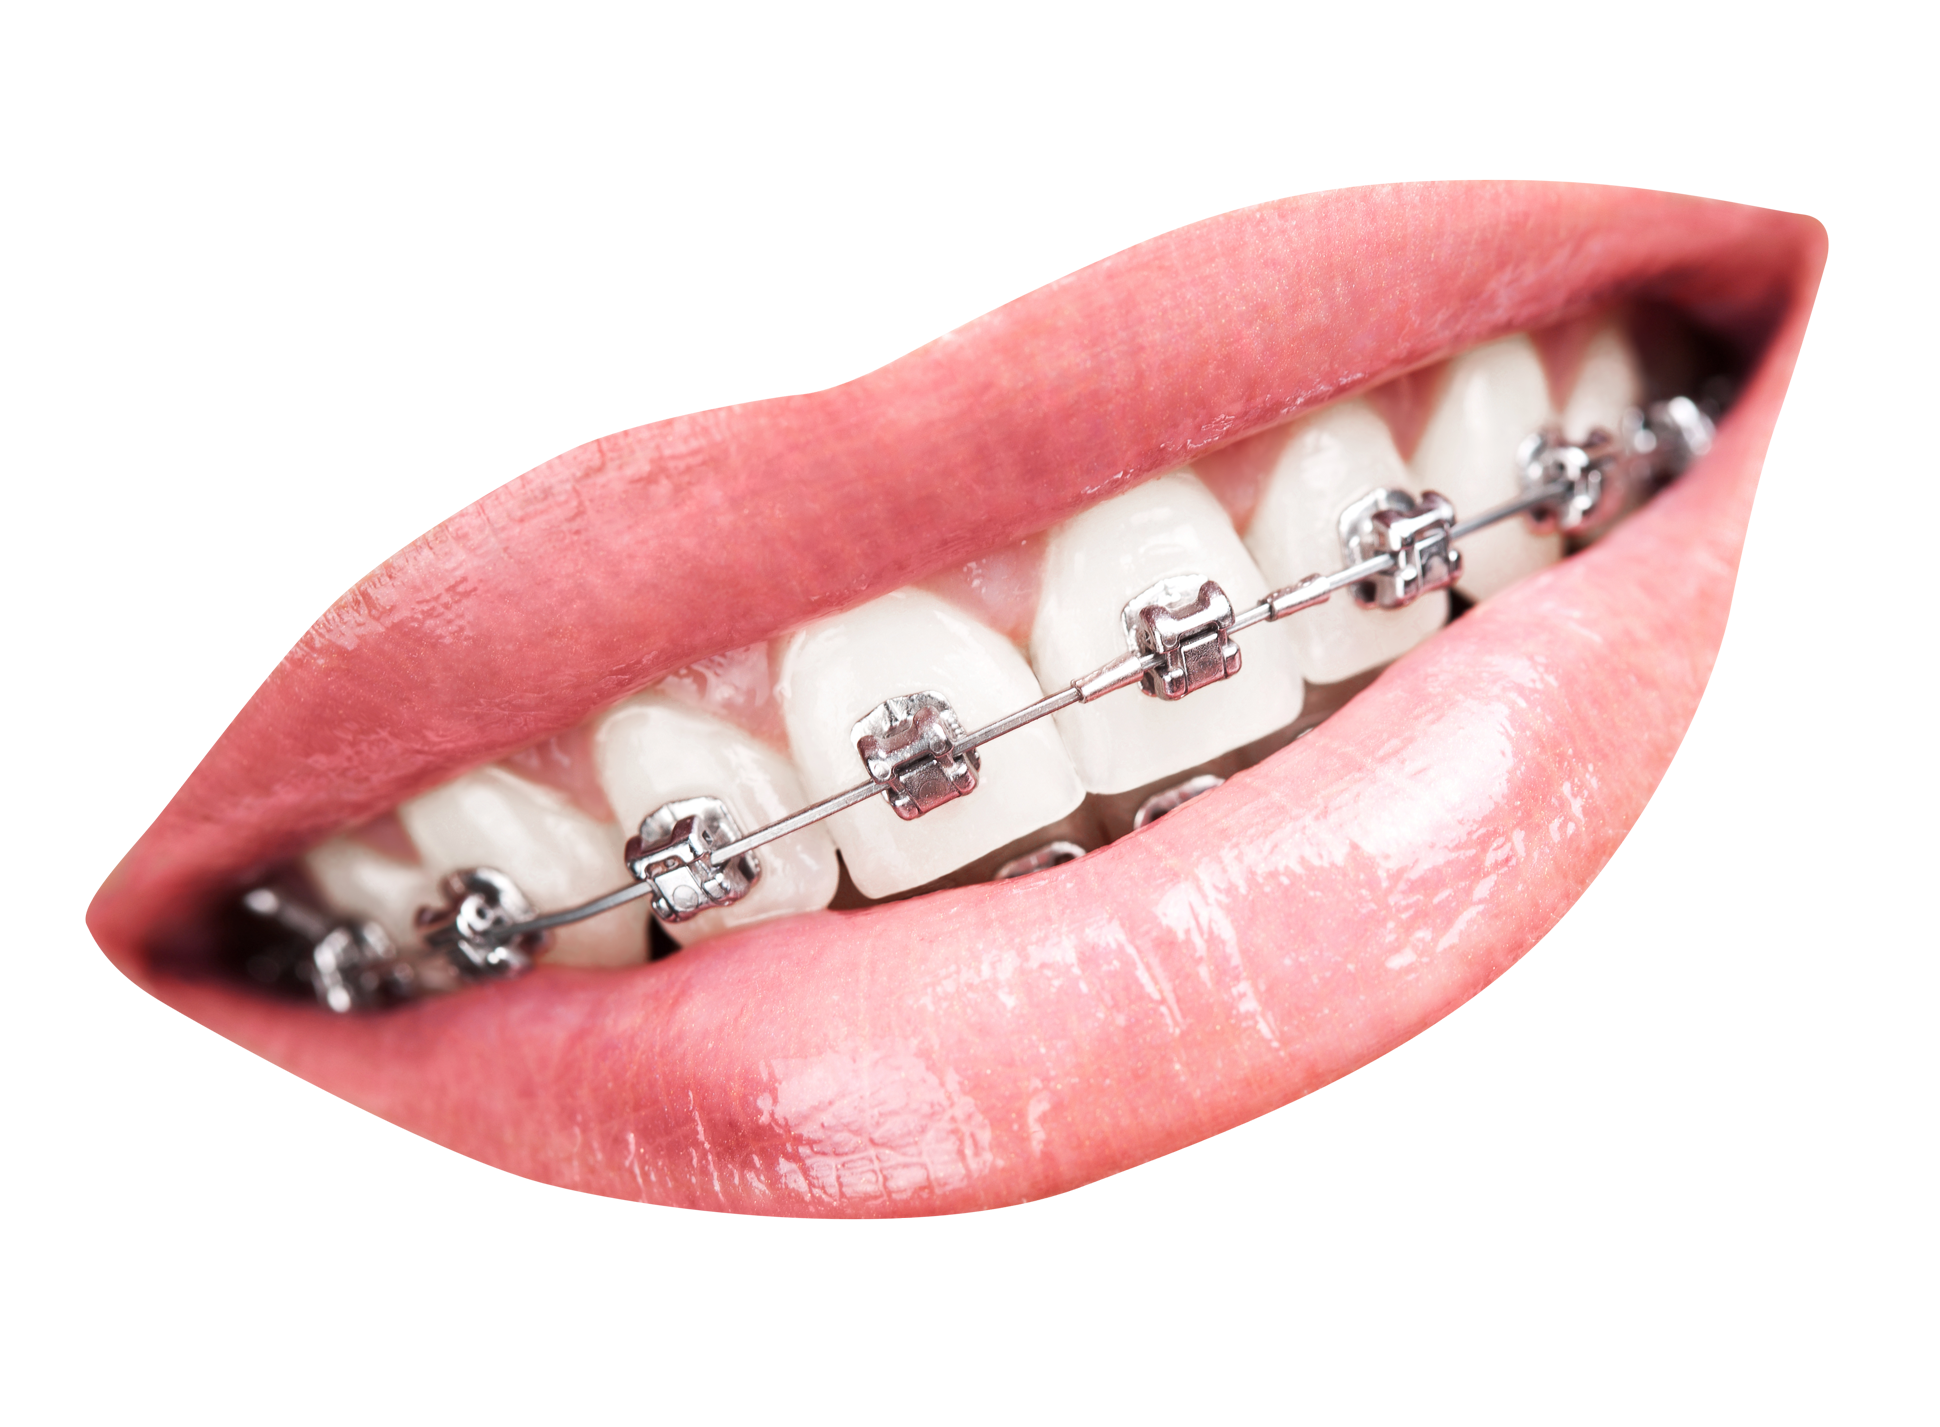 Teeth With Braces PNG Transparent Image #41897.